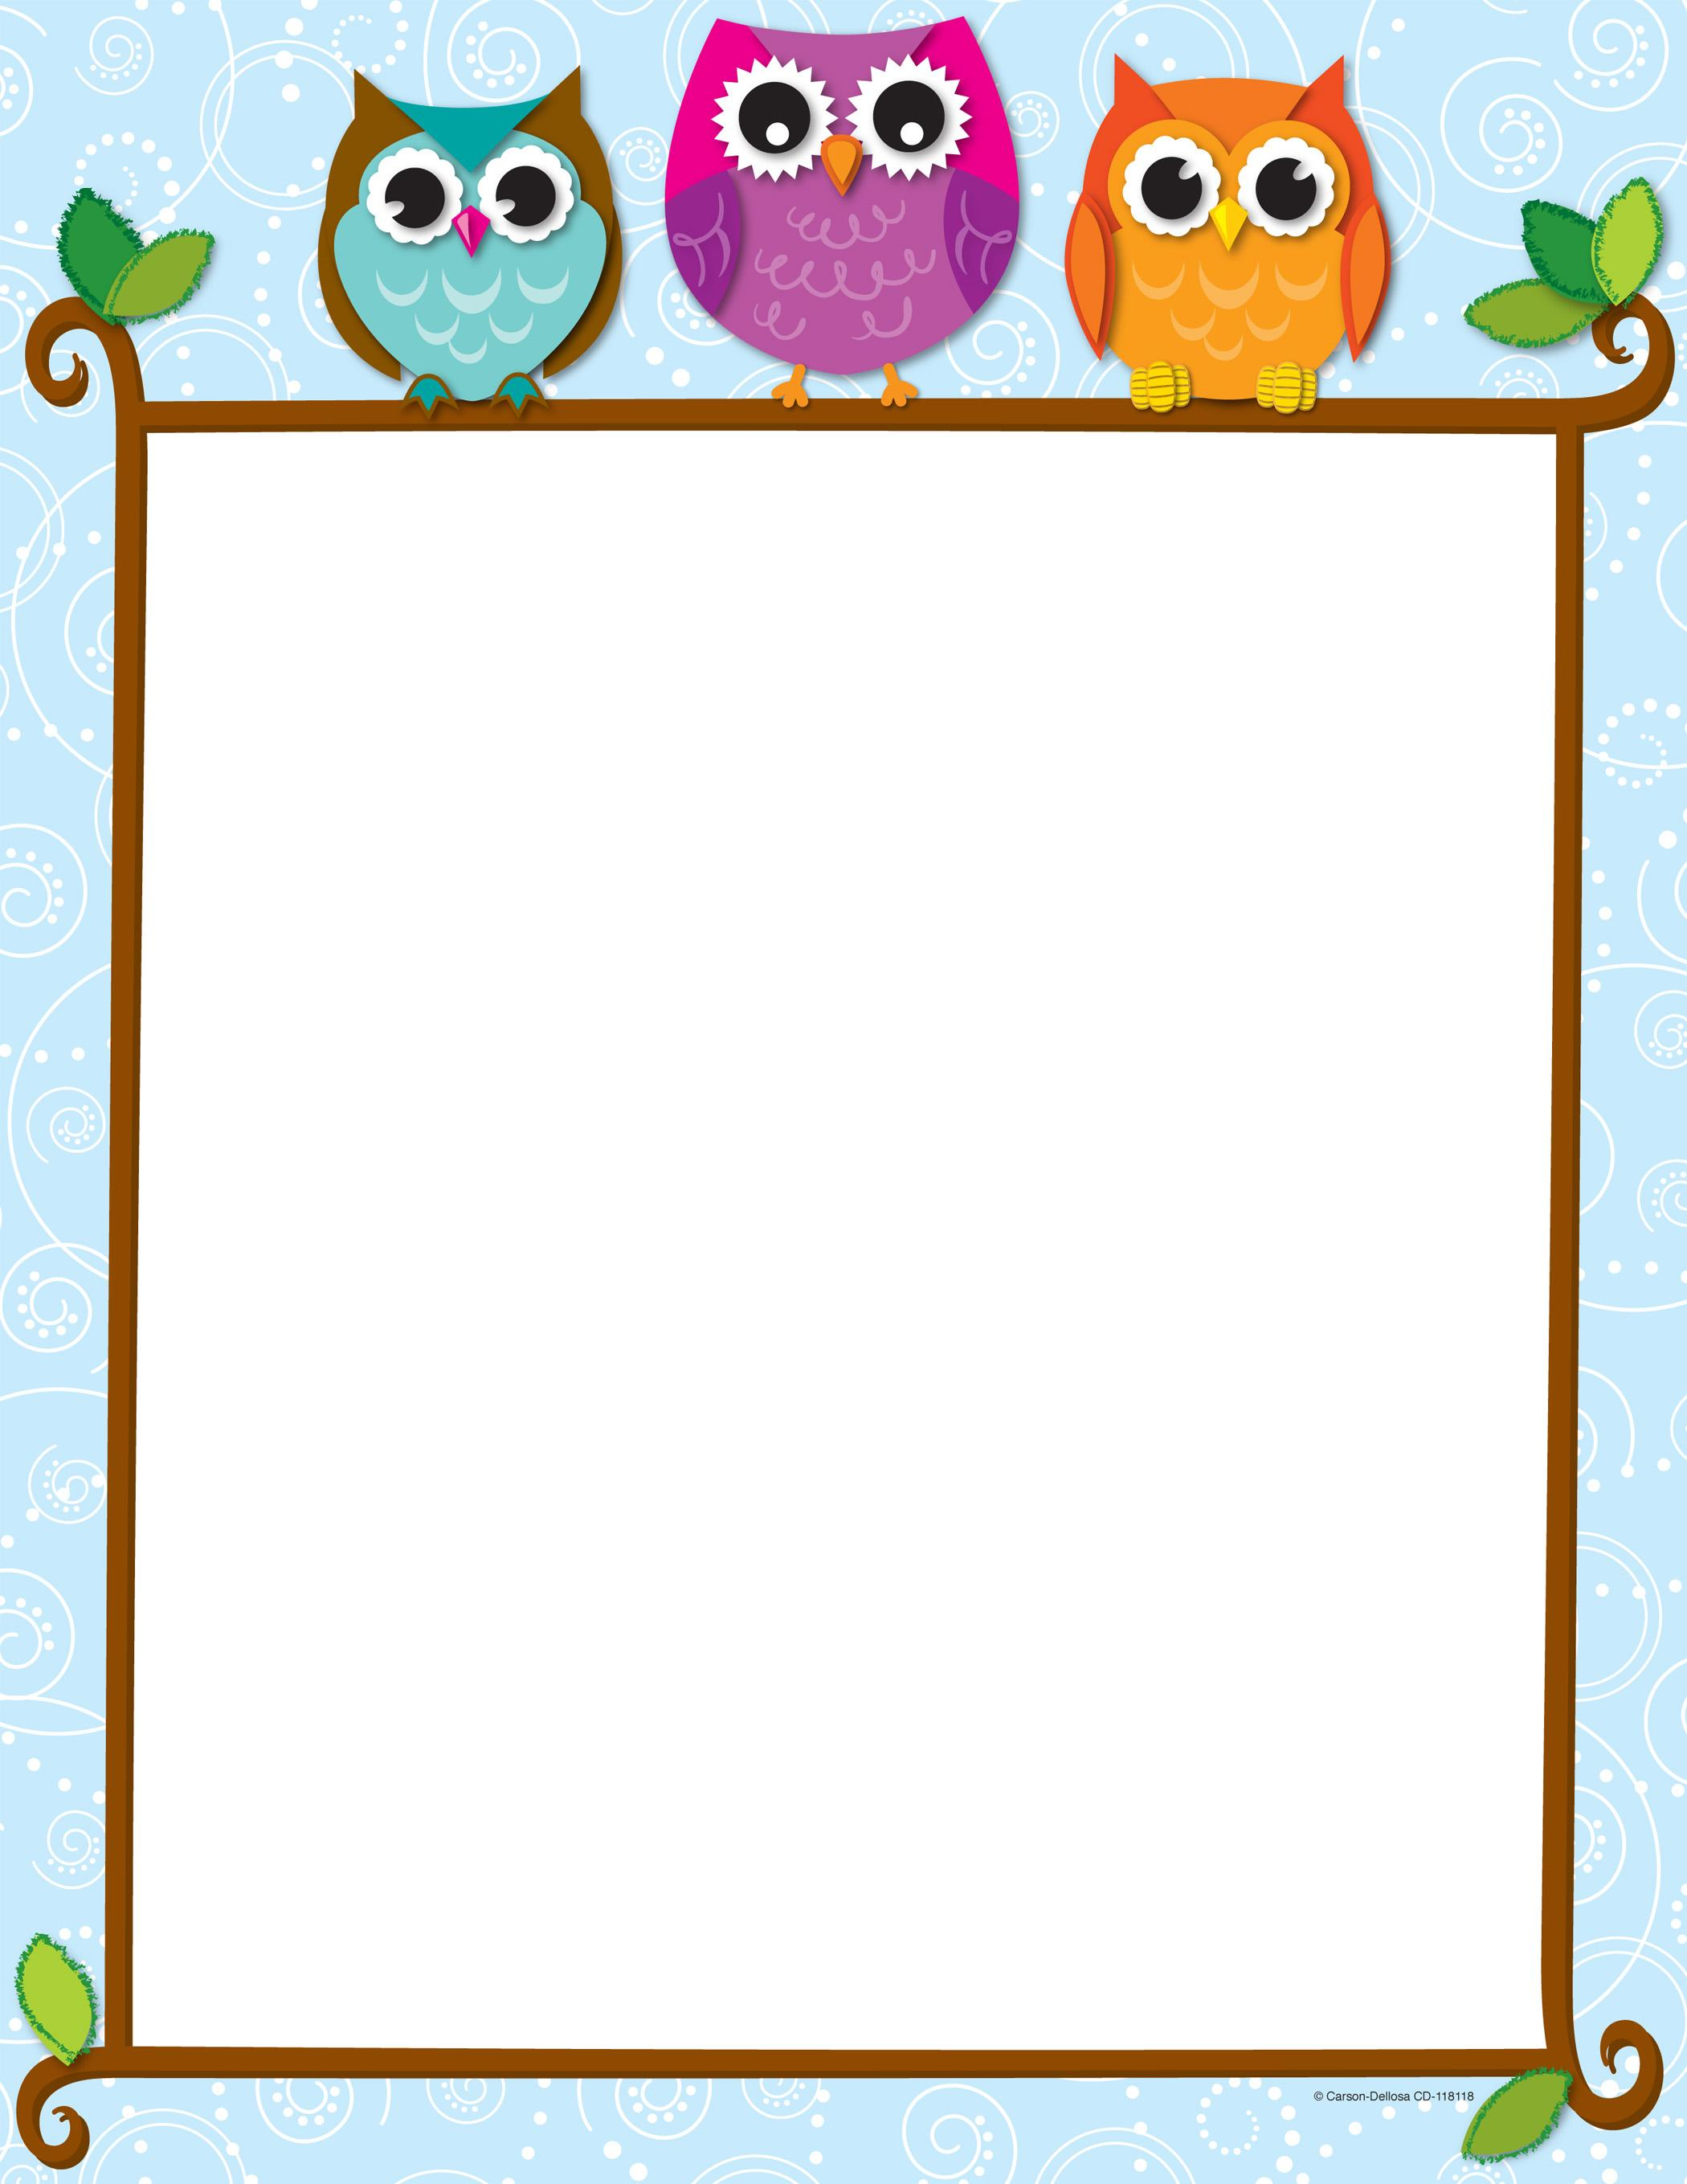 Page border with colorful owls on a tree limb and a nighttime sky.